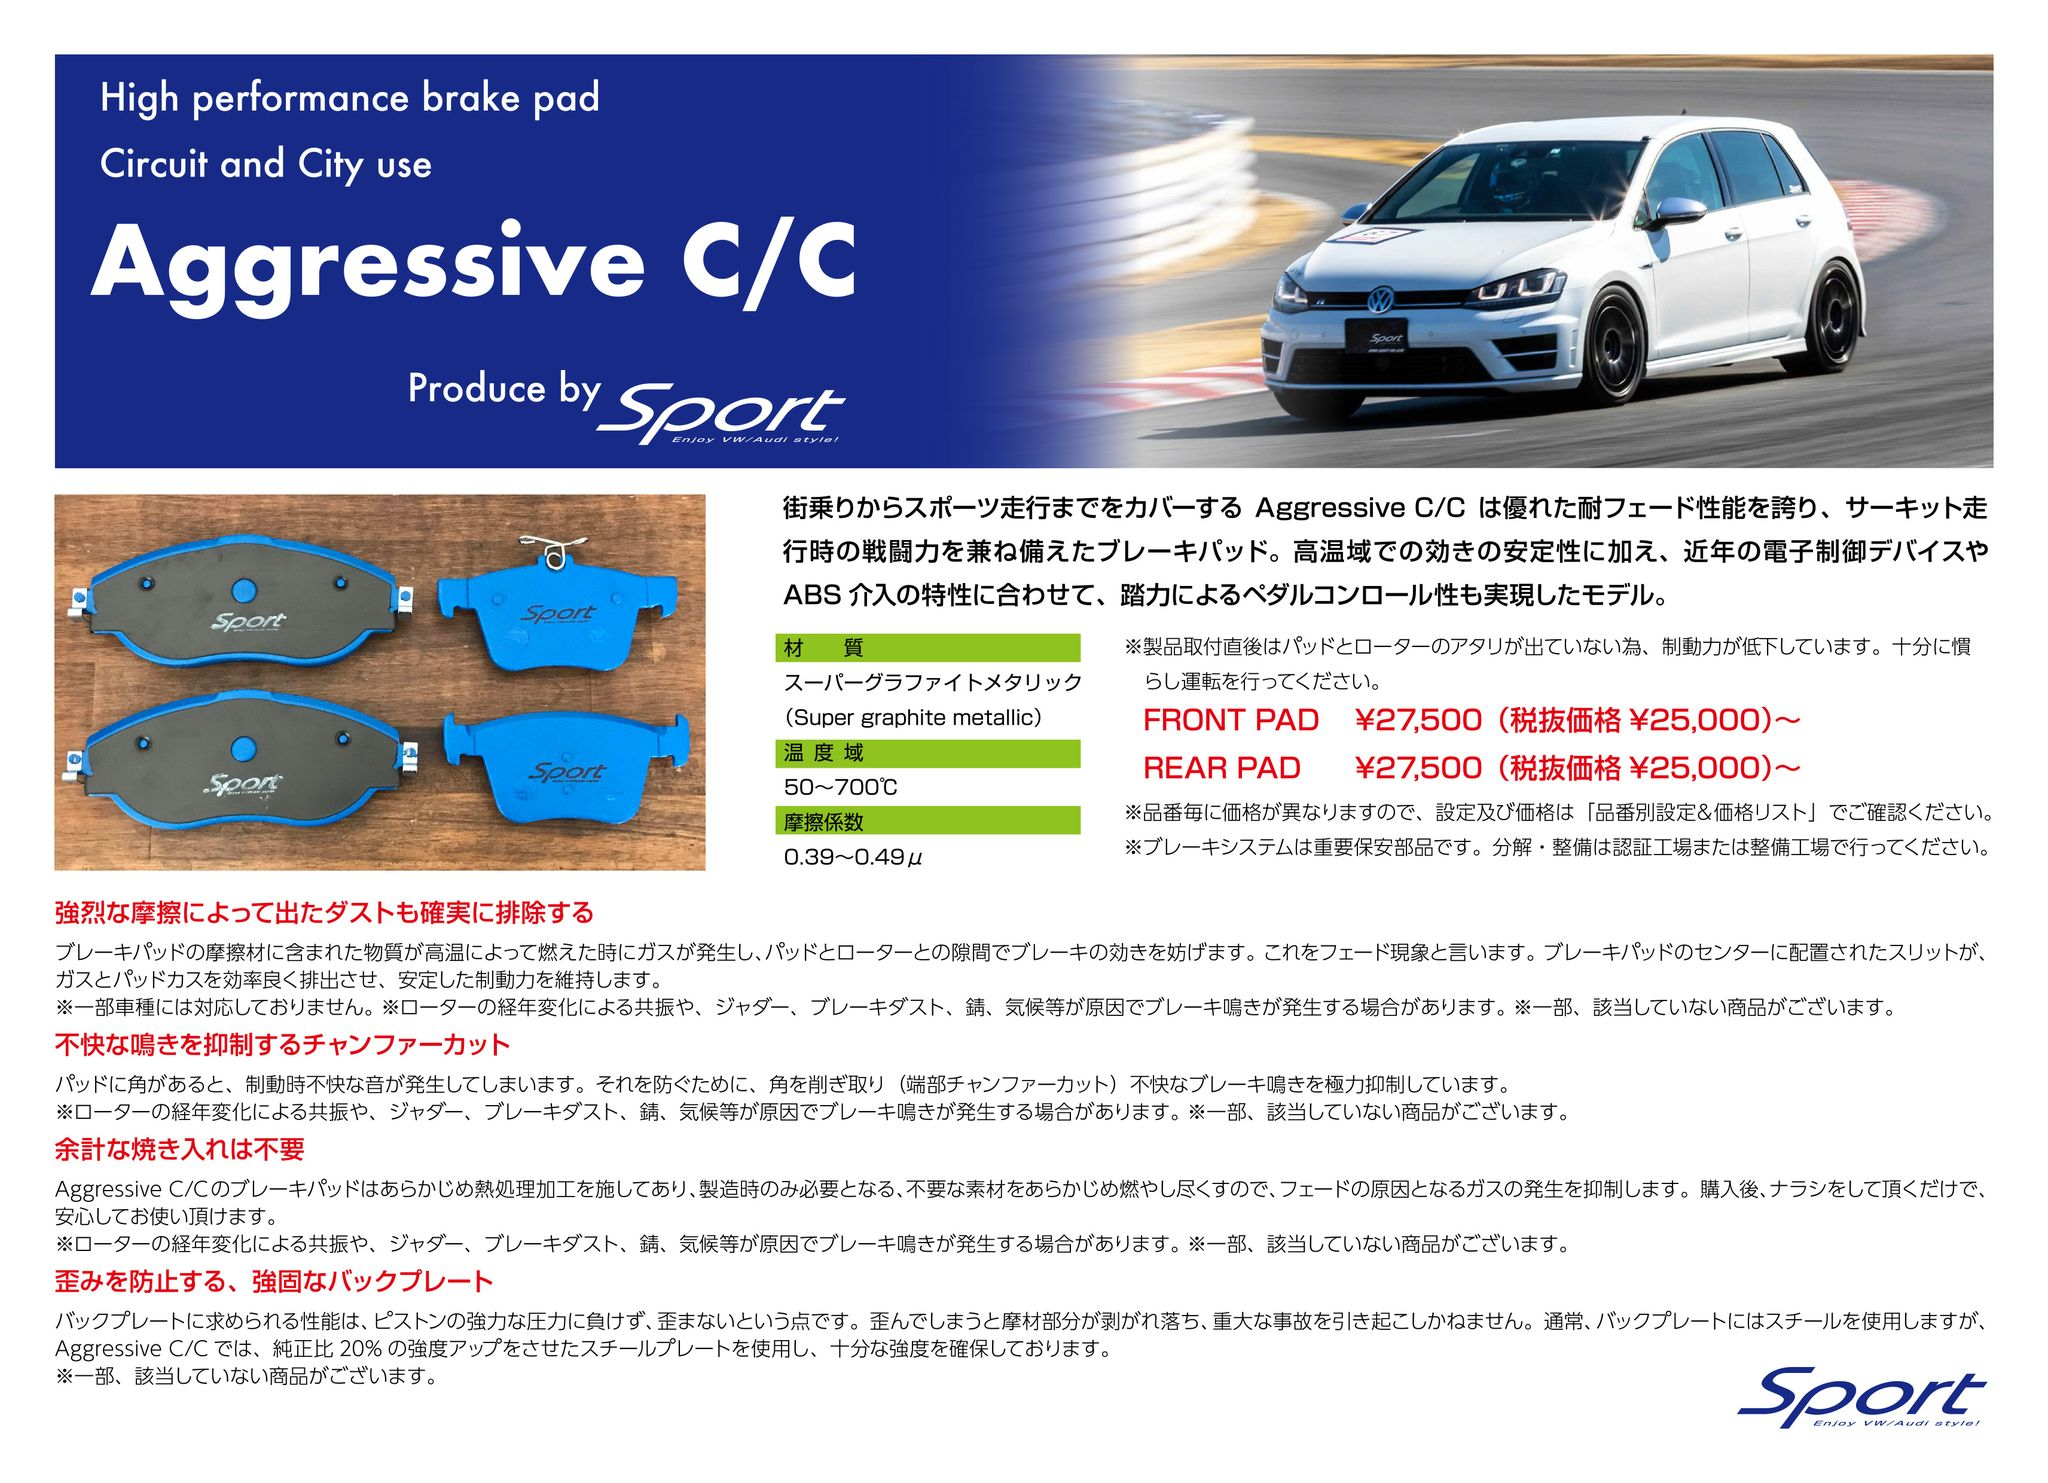 Aggressive C/C : High performance brake pad Circuit and City use Produce by Sport